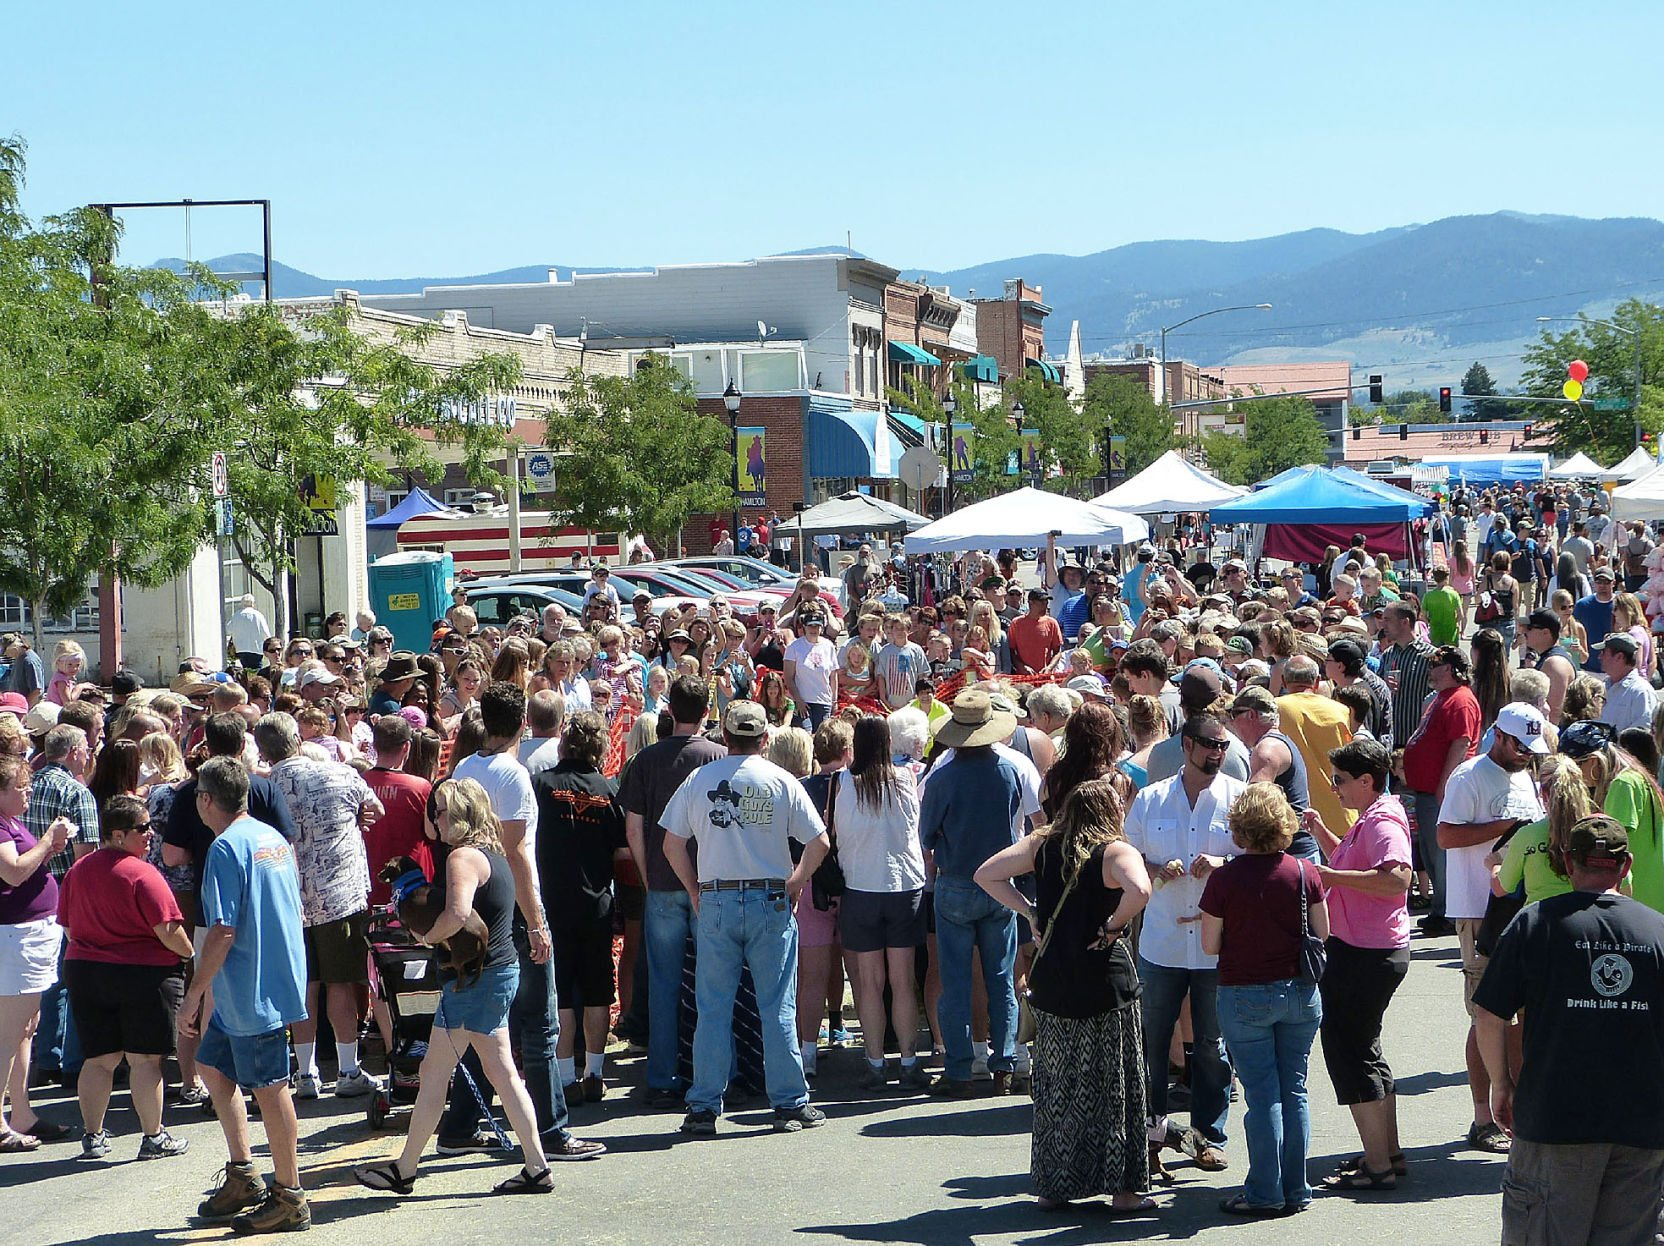 Daly Days Annual event includes events downtown